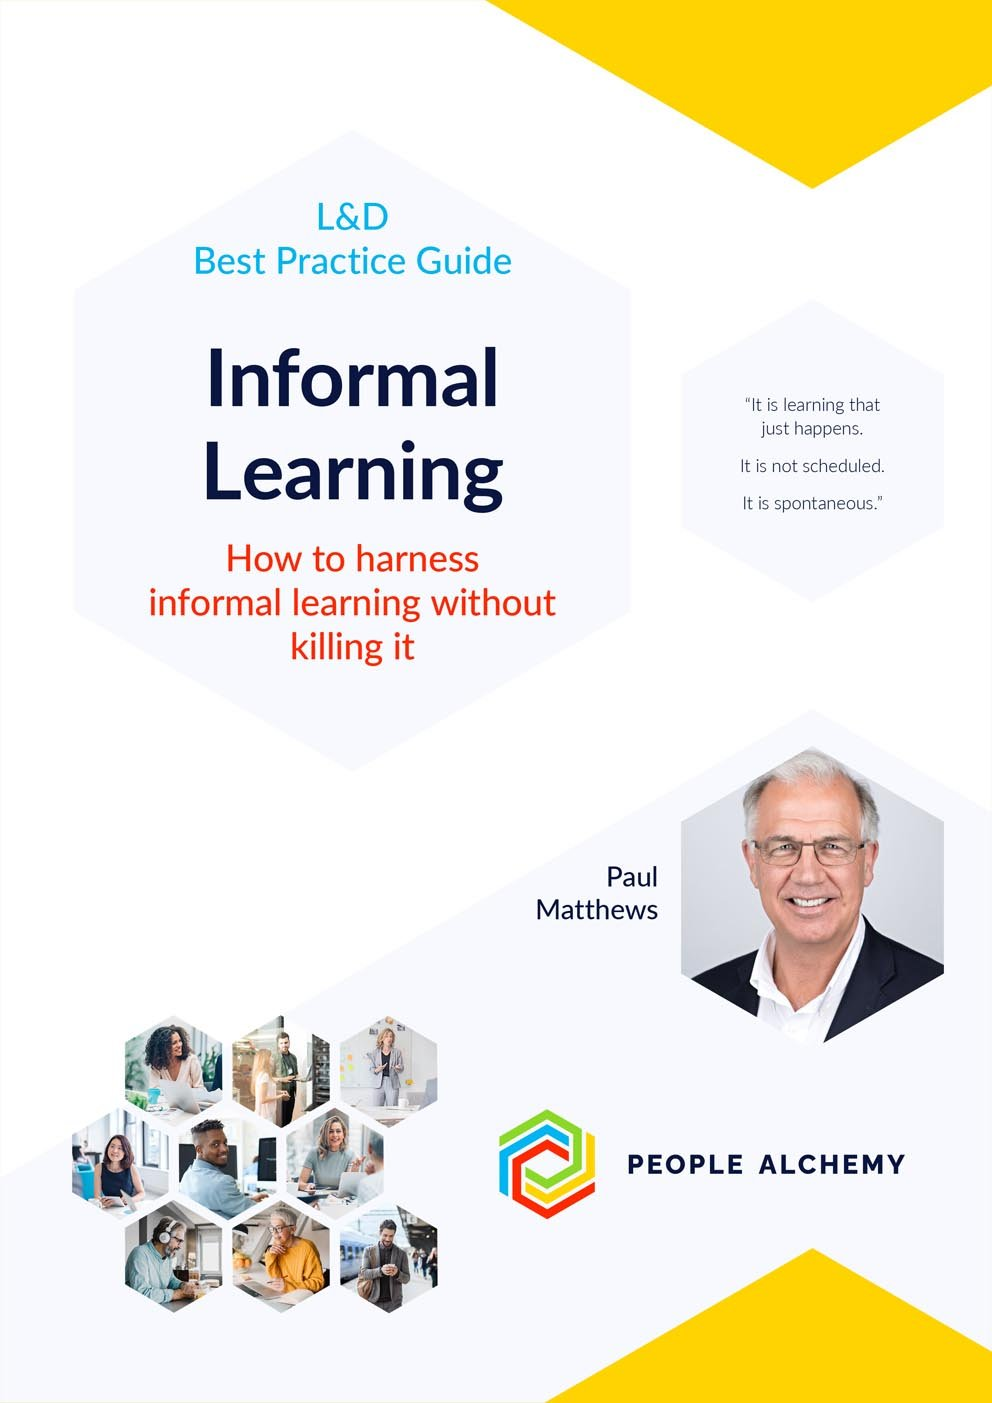 https://peoplealchemy.com/wp-content/uploads/2021/09/PA-Best-Practice-Guides-2021-covers-2.jpg